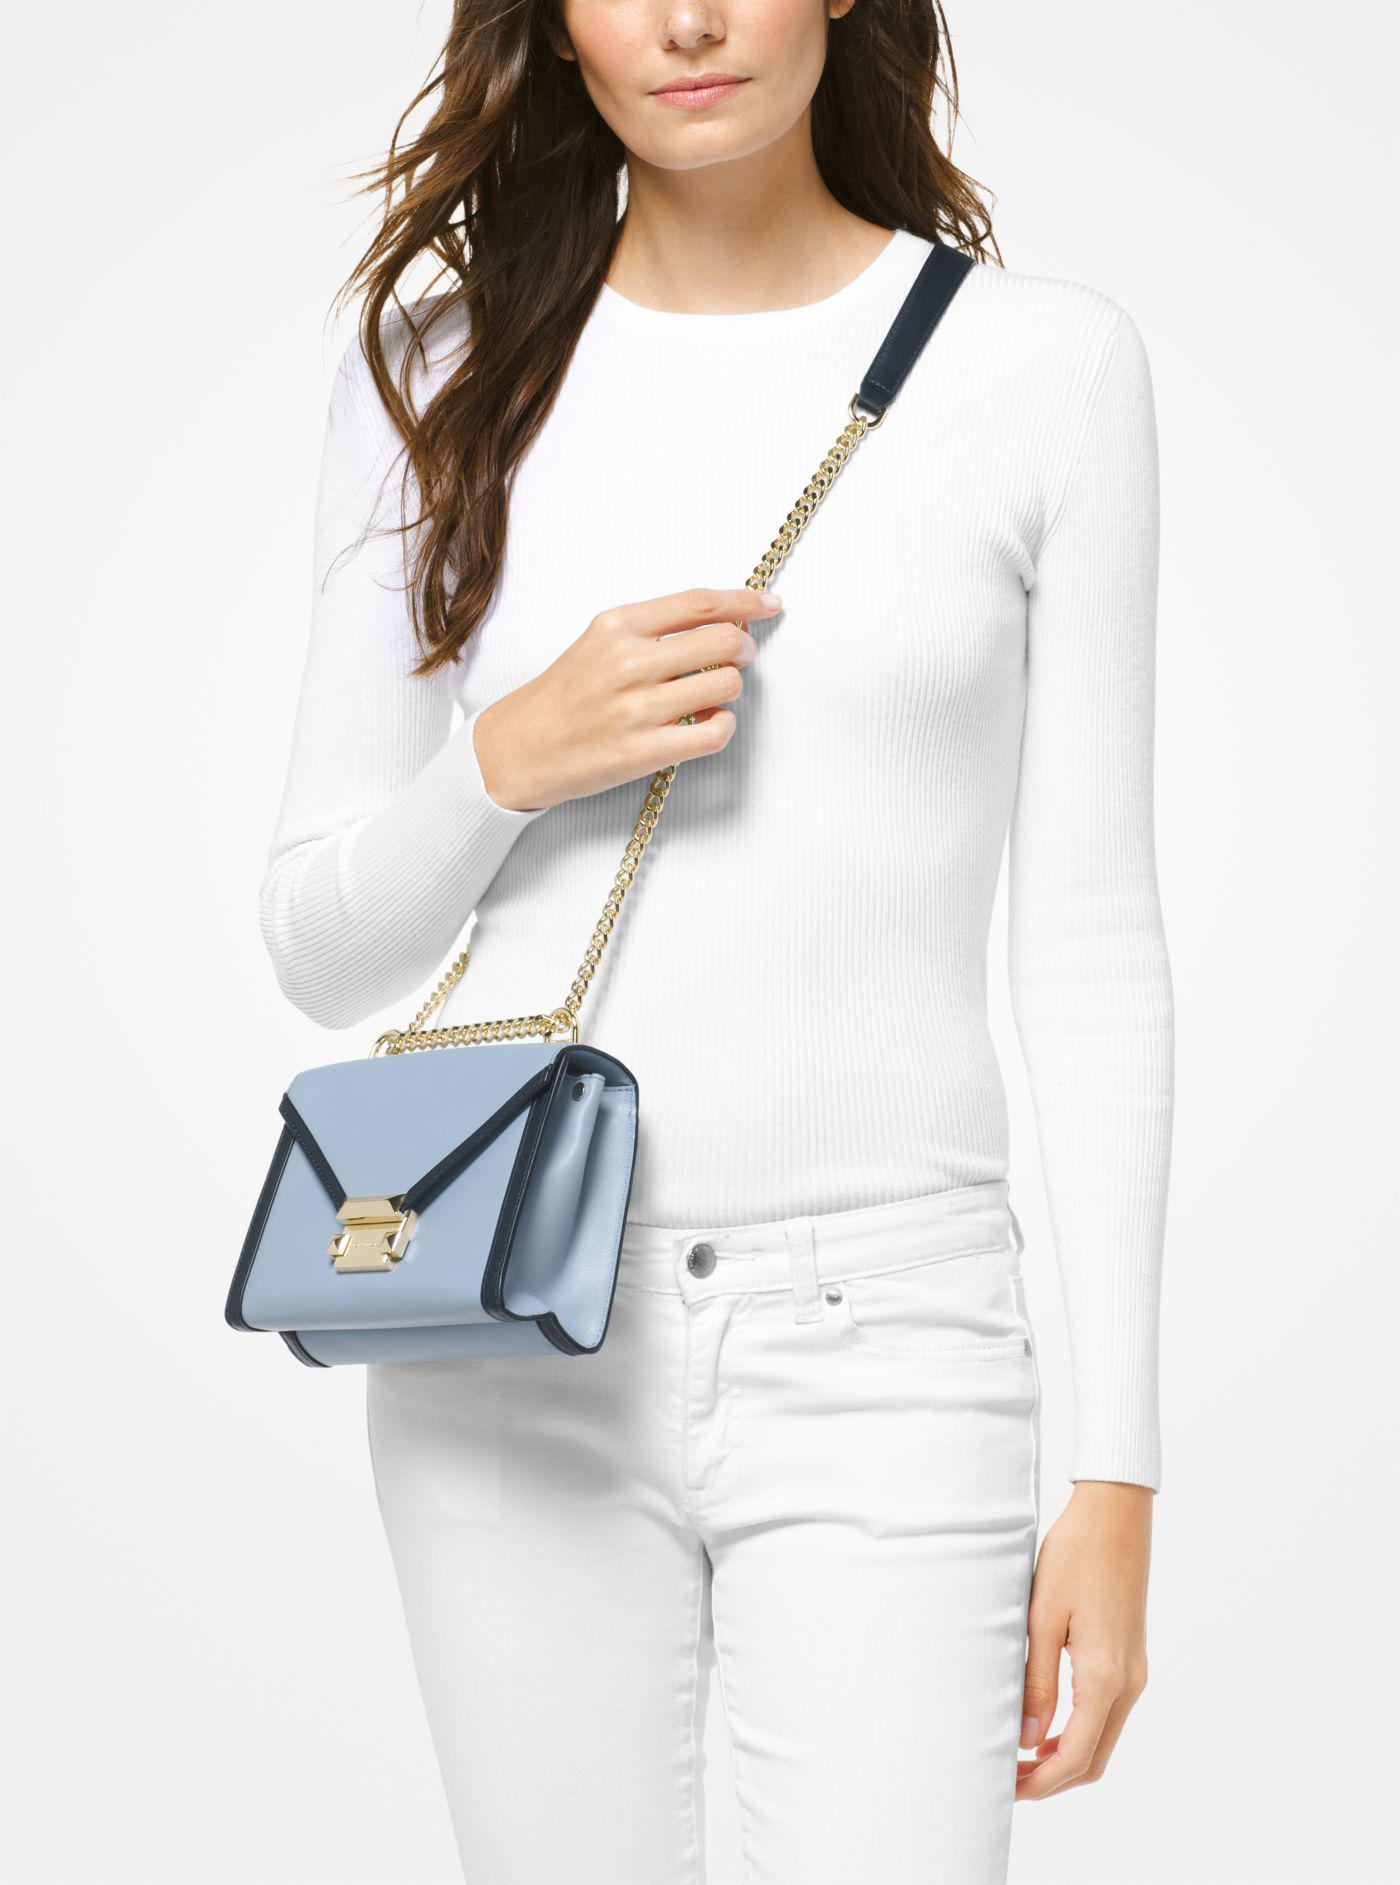 bdb95115ccf0 Michael Kors Whitney Small Leather Shoulder Bag in Blue - Lyst